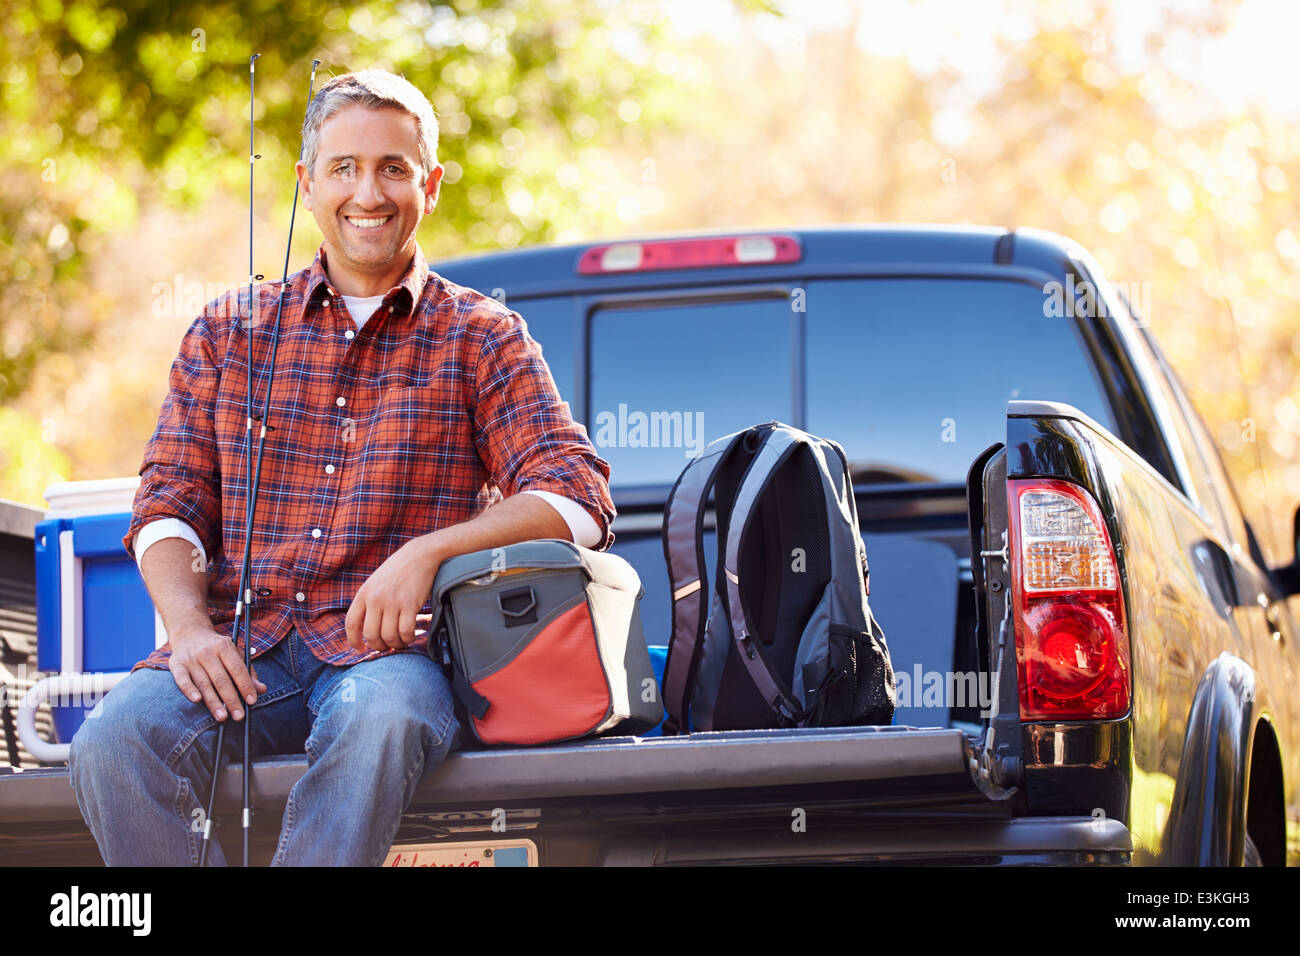 Portrait Of Man Sitting In Pick Up Truck On Camping Holiday - Stock Image